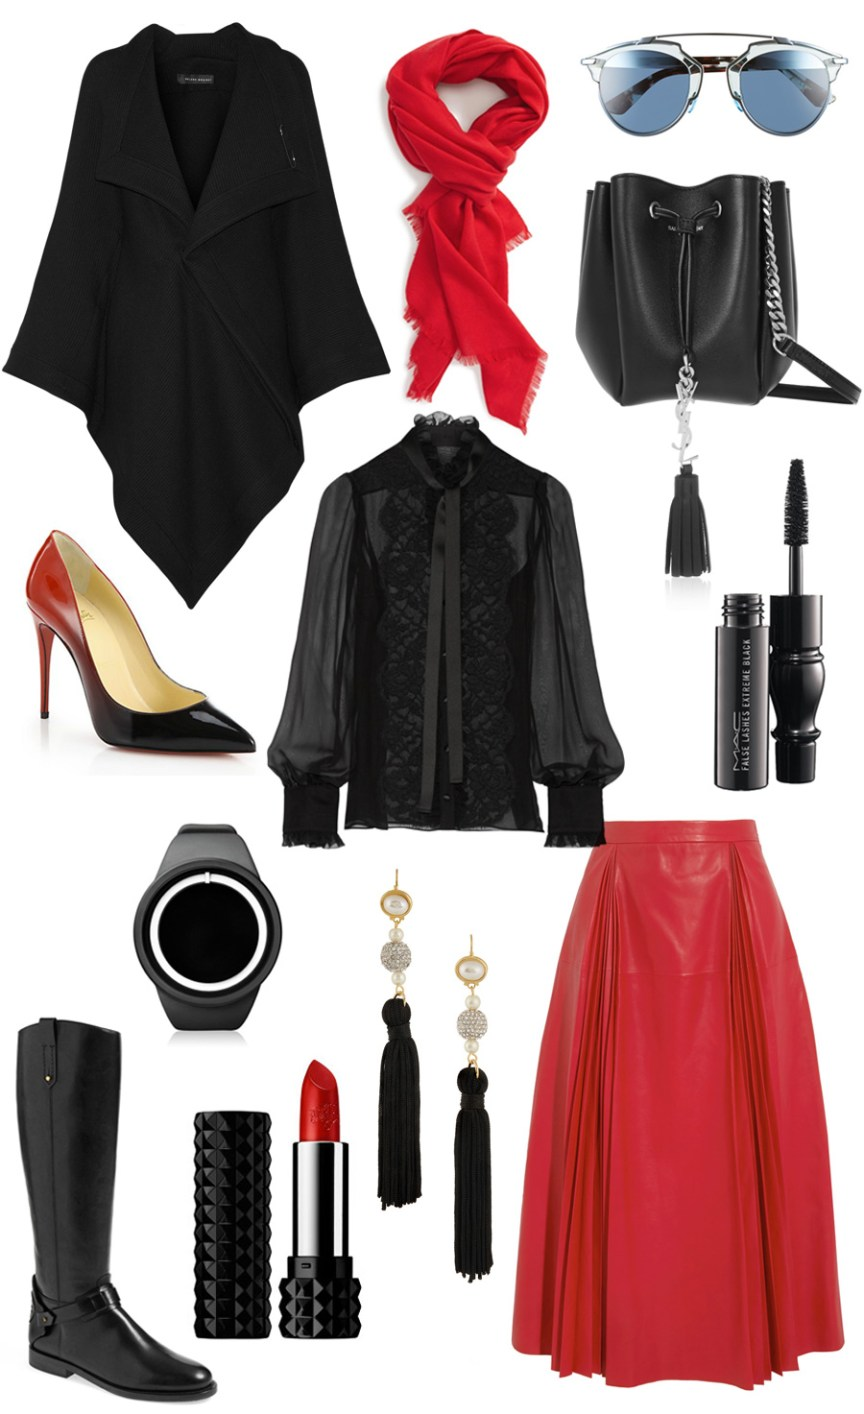 Black and red style wardrobe (aka Dracula Style wardrobe): black Roland Mouret's 'Caneva' cape, Kat Von D Studded Kiss Lipstick, Pleated leather skirt Gucci, Pussy-bow lace-trimmed silk-blend chiffon blouse, Women's Dior 'So Real' 48mm Sunglasses, Monogramme Bourse mini leather bucket bag YSL, MAC 'Sized to Go - False Lashes Extreme Black' Mascara